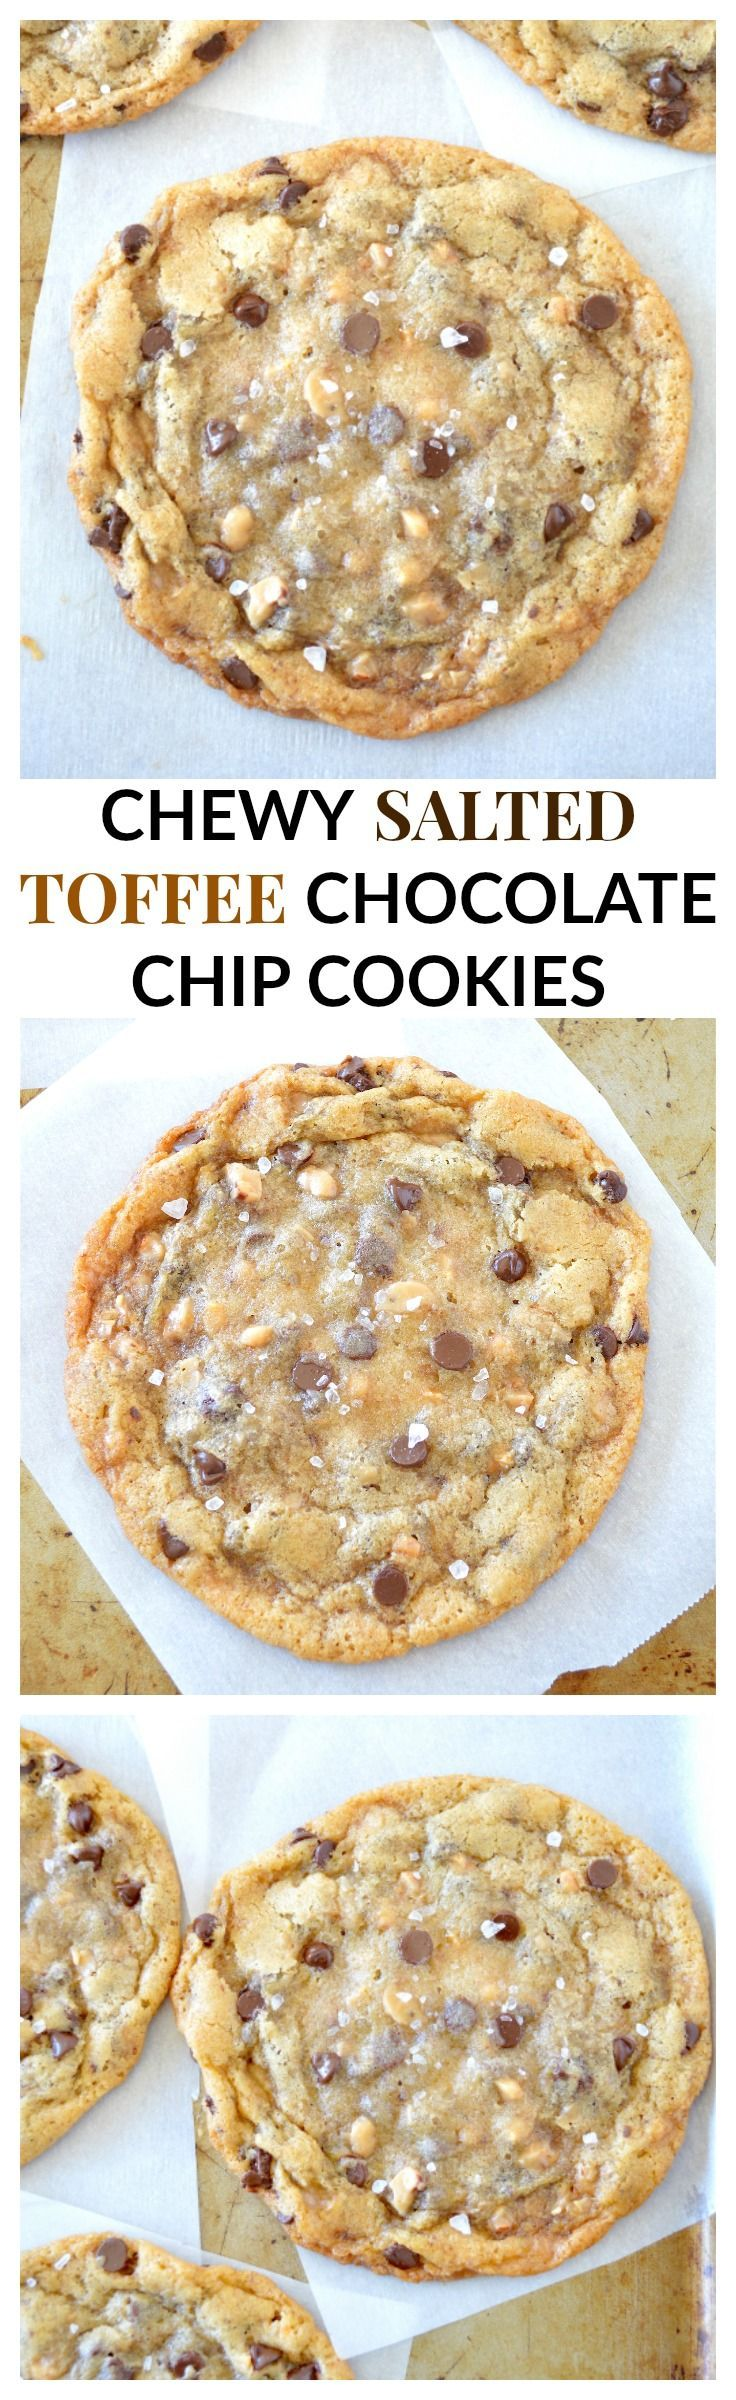 CHEWY SALTED TOFFEE CHOCOLATE CHIP COOKIES - buttery, soft & chewy sea salted toffee & milk chocolate chip cookies!! #dessert